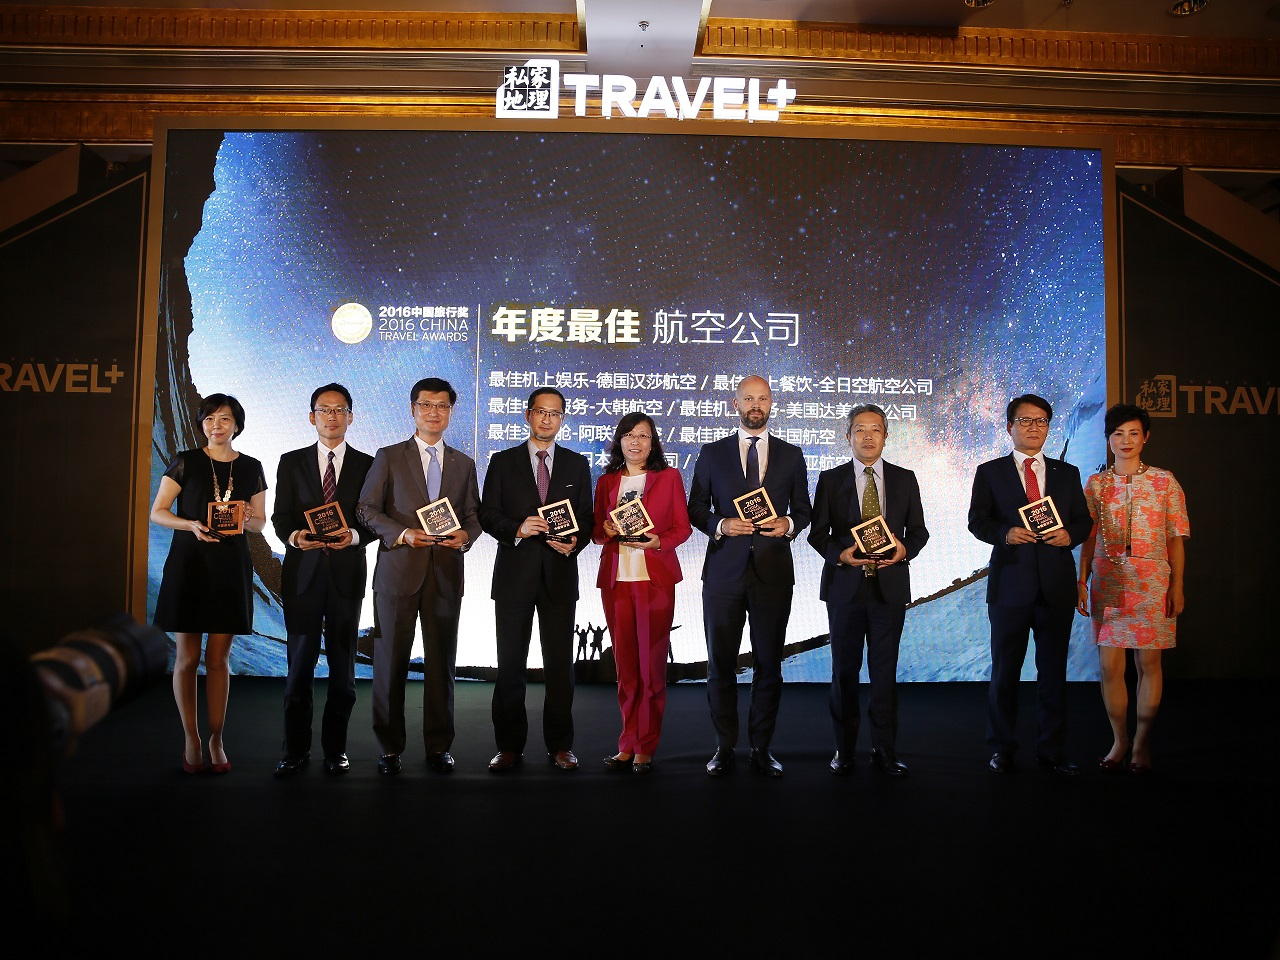 2016 China Travel Awards